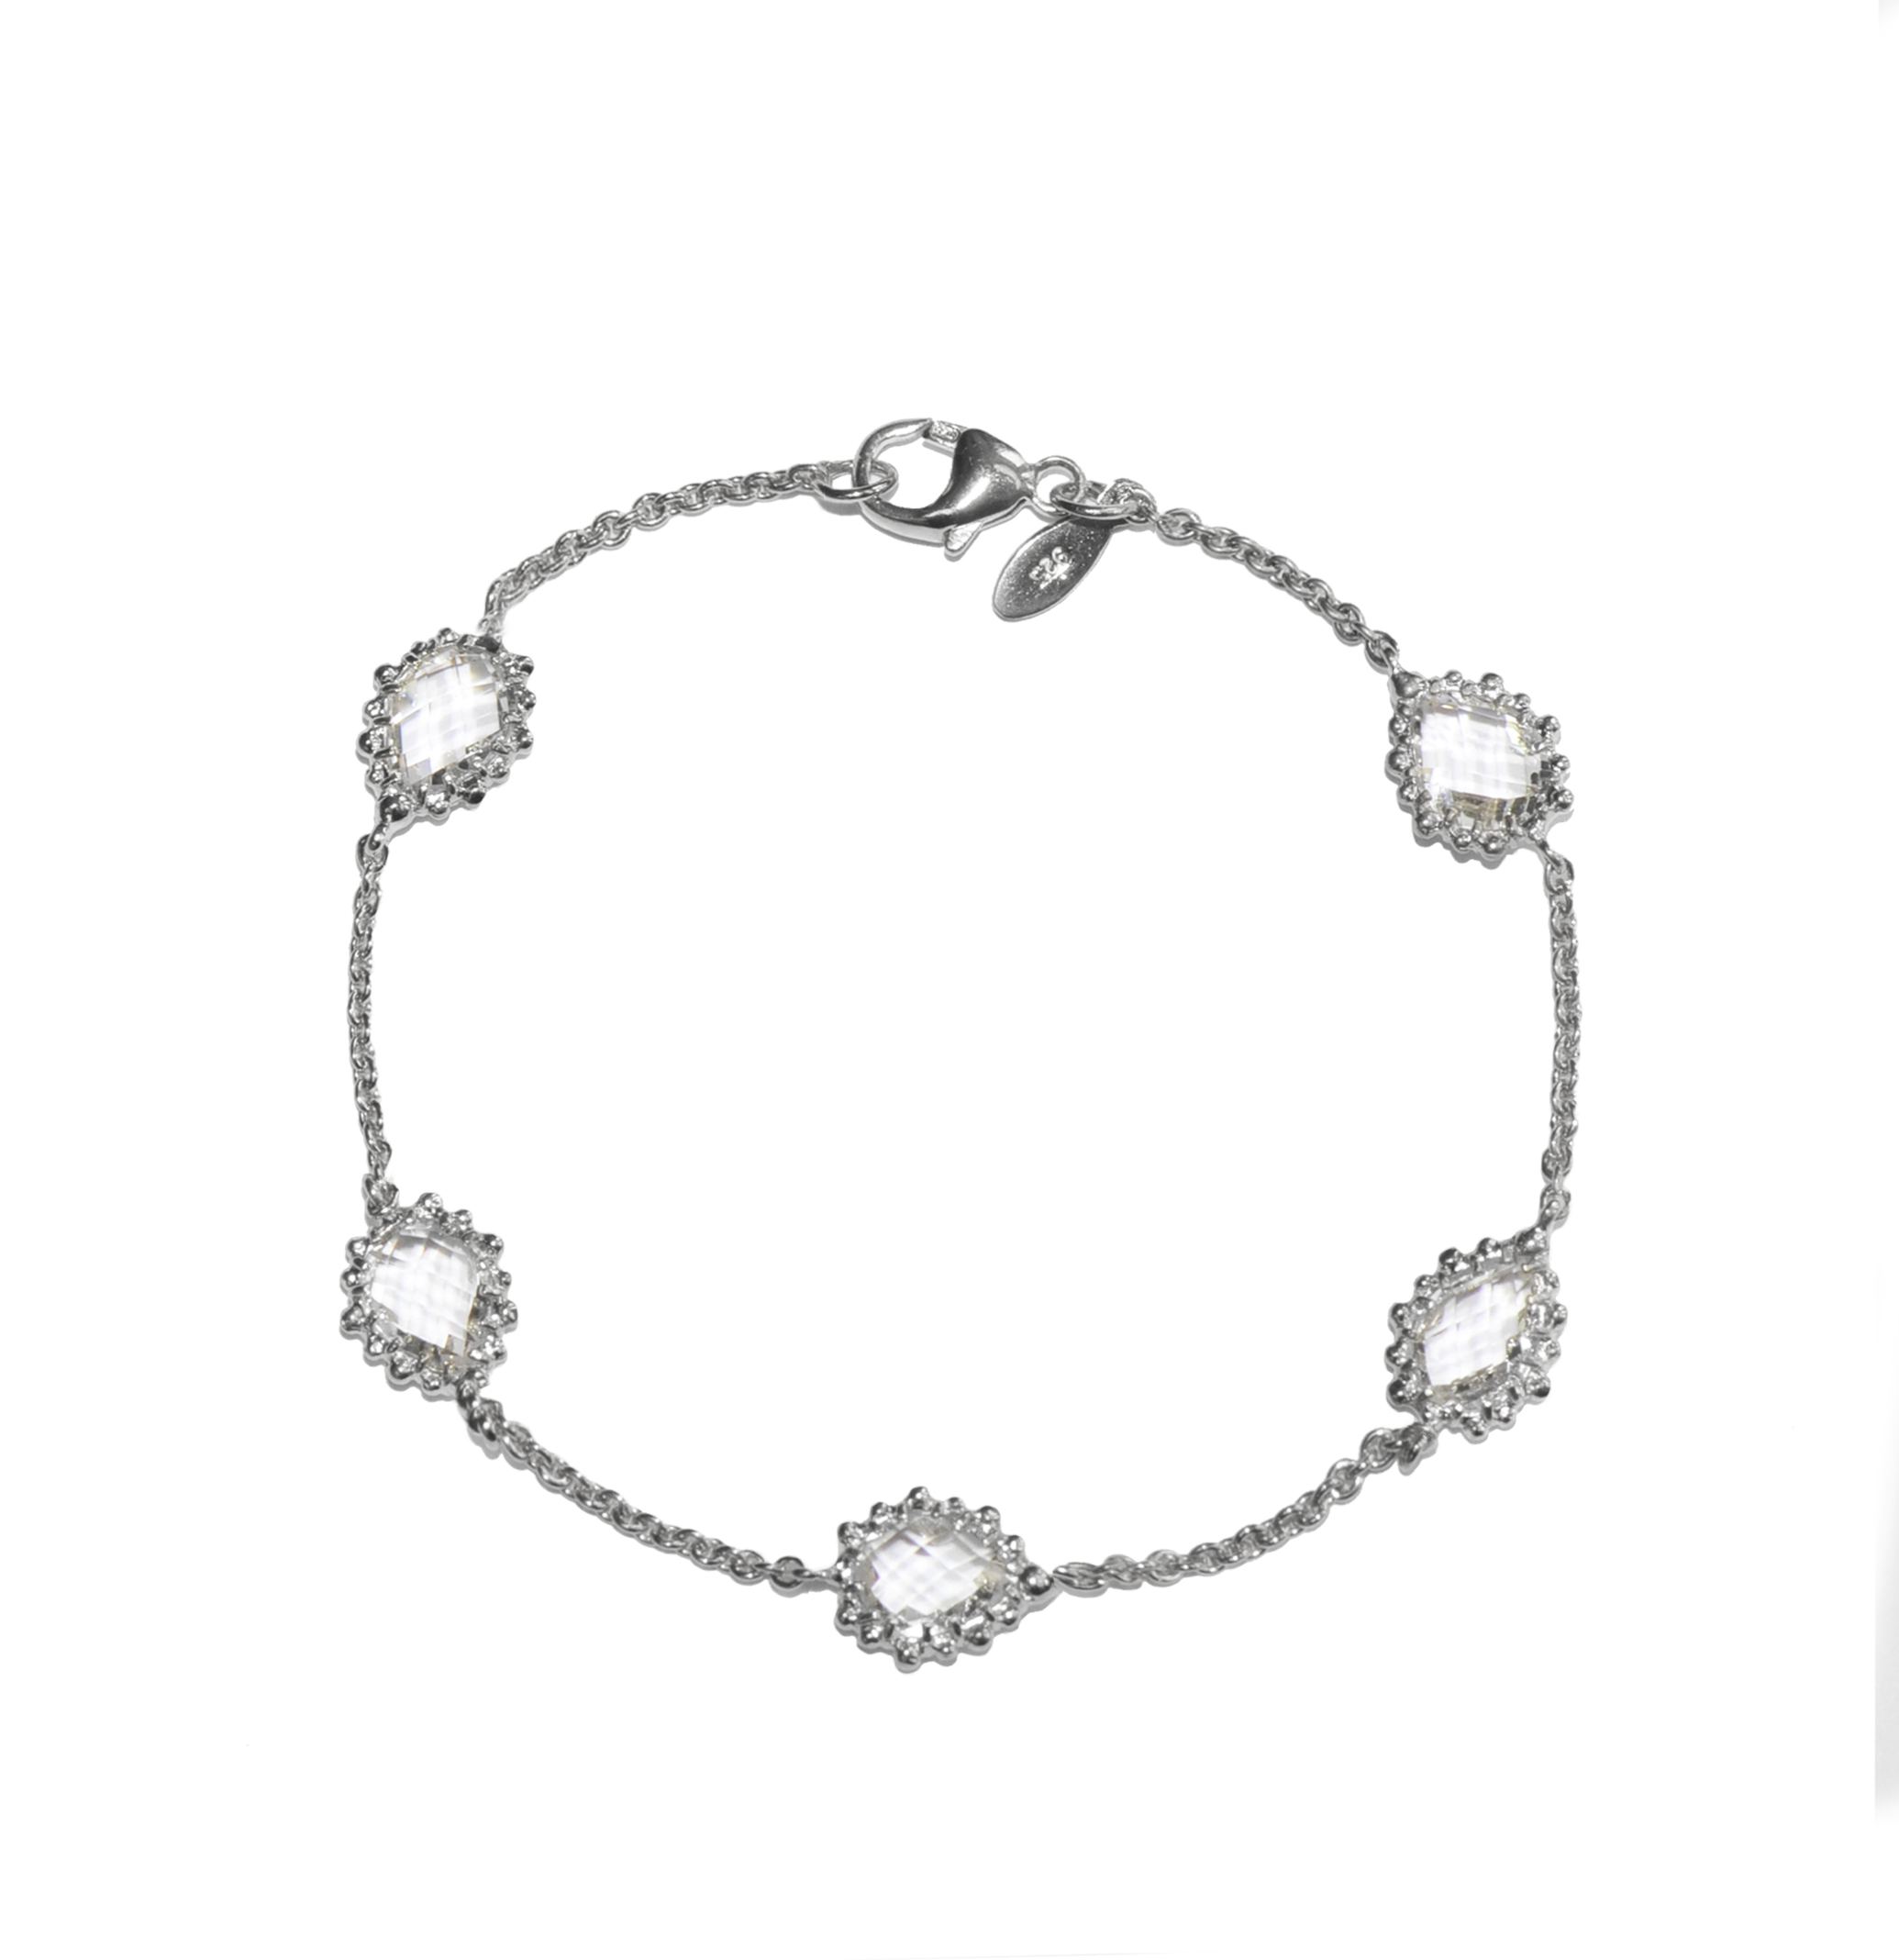 monday linked in image bracelet jewellery women of cz cheap com cheapmonday accessories silver